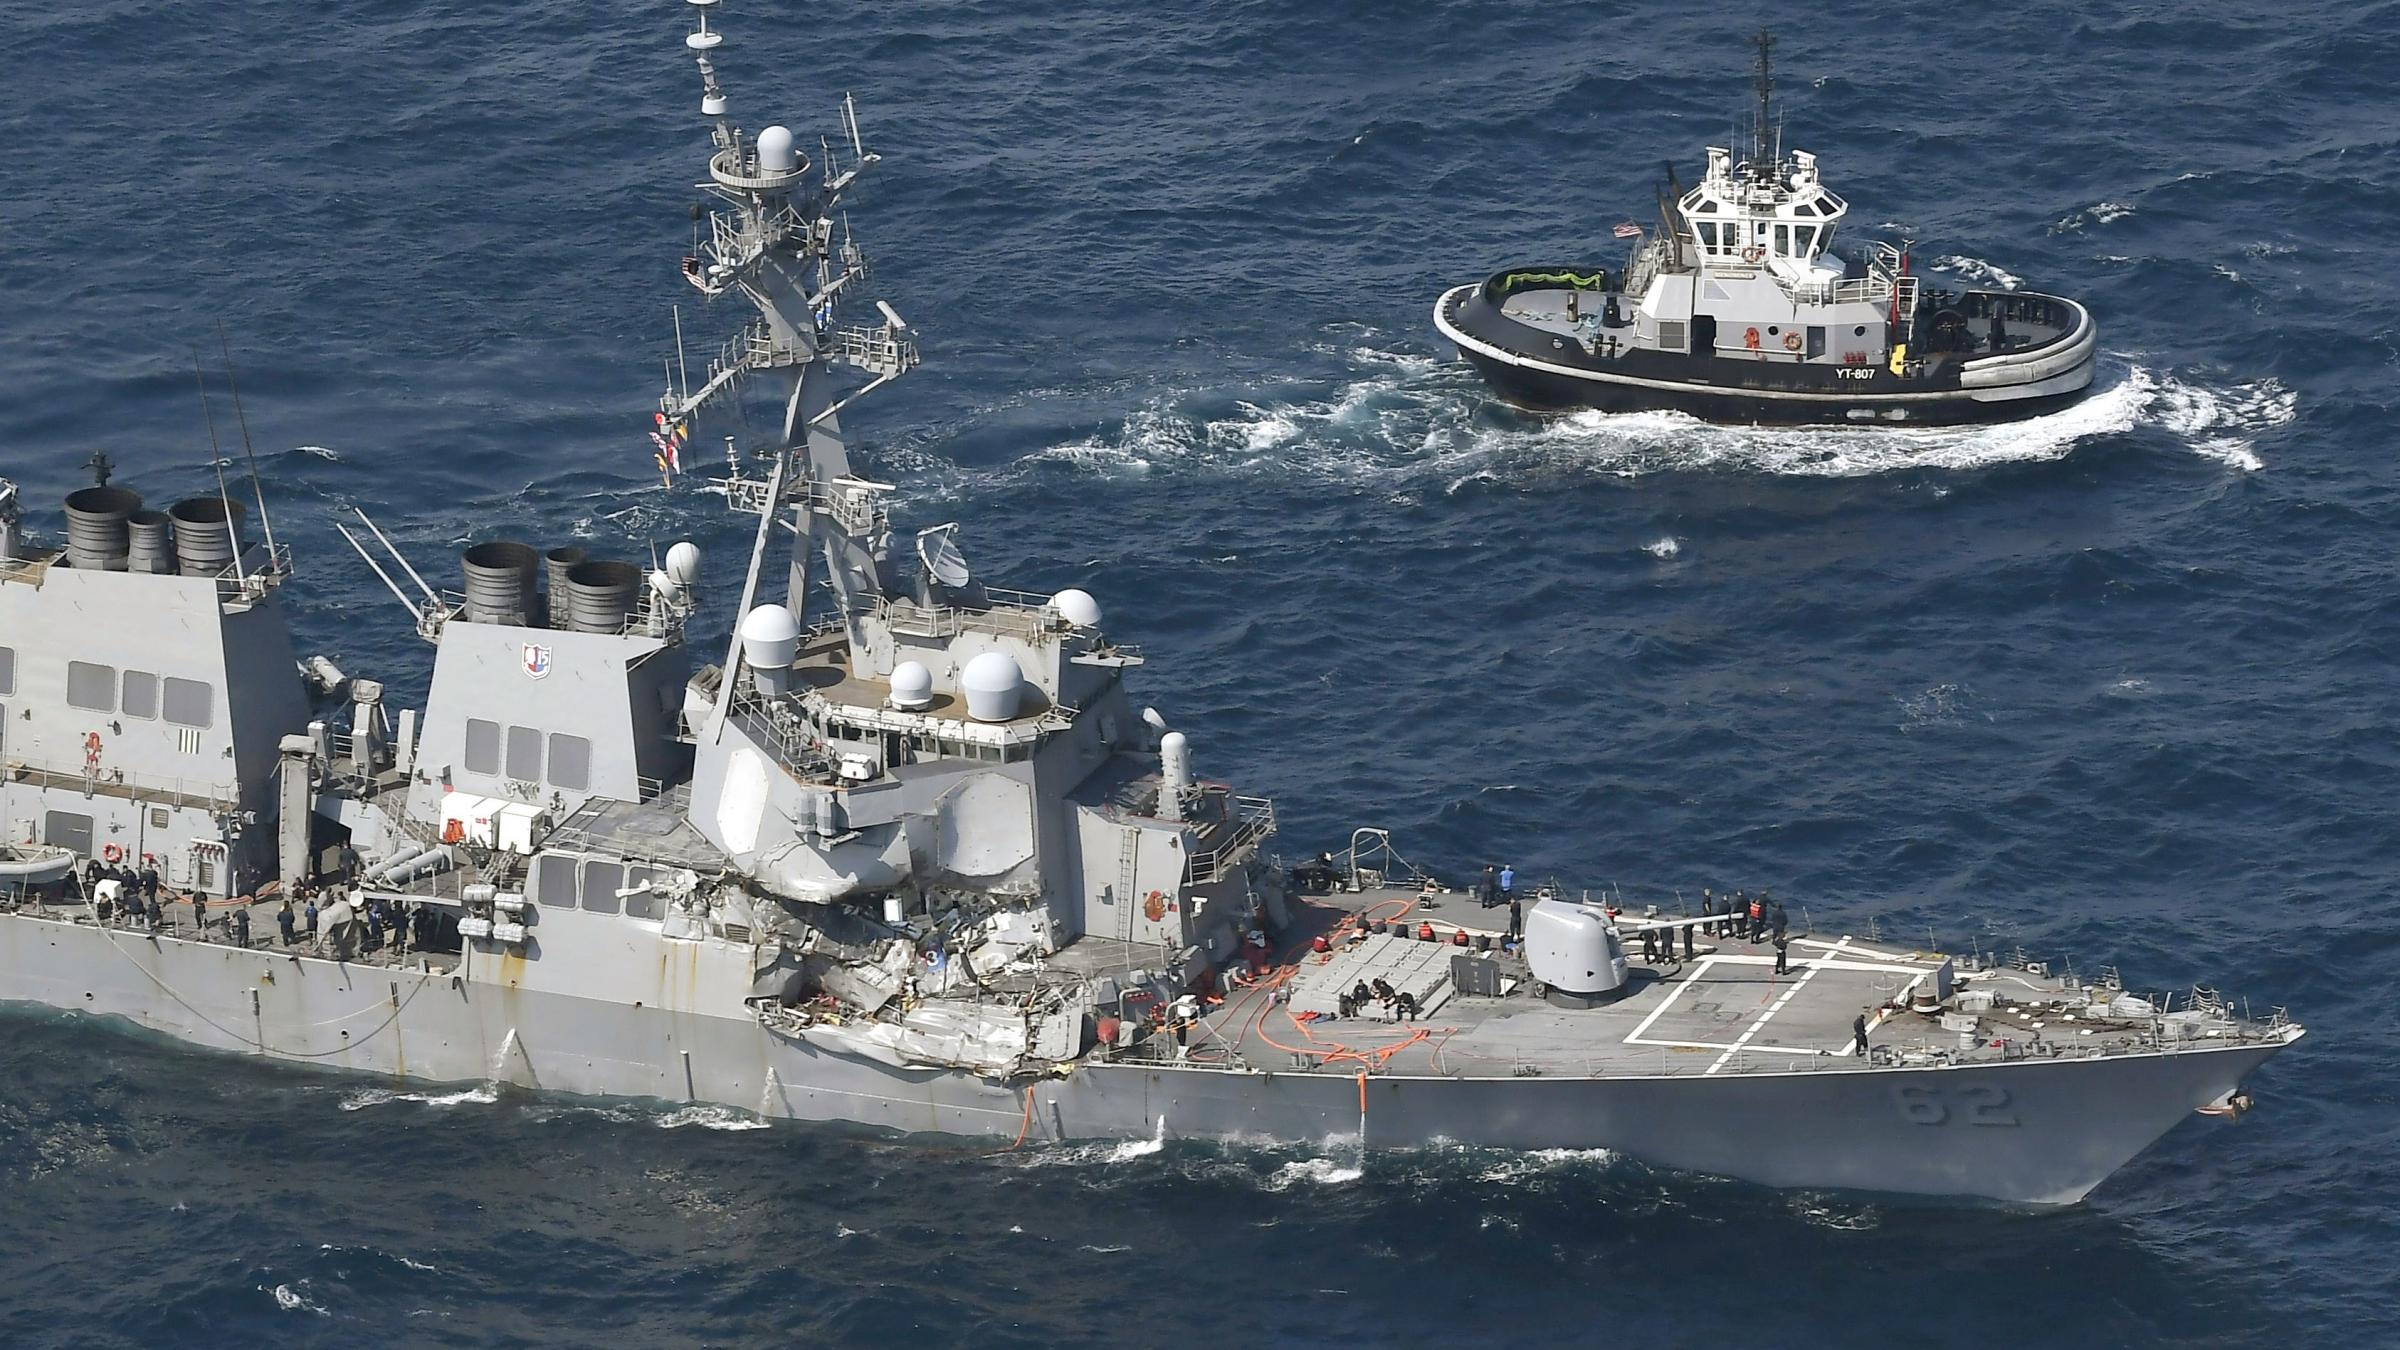 Search goes on for seven US sailors after collision off Japan